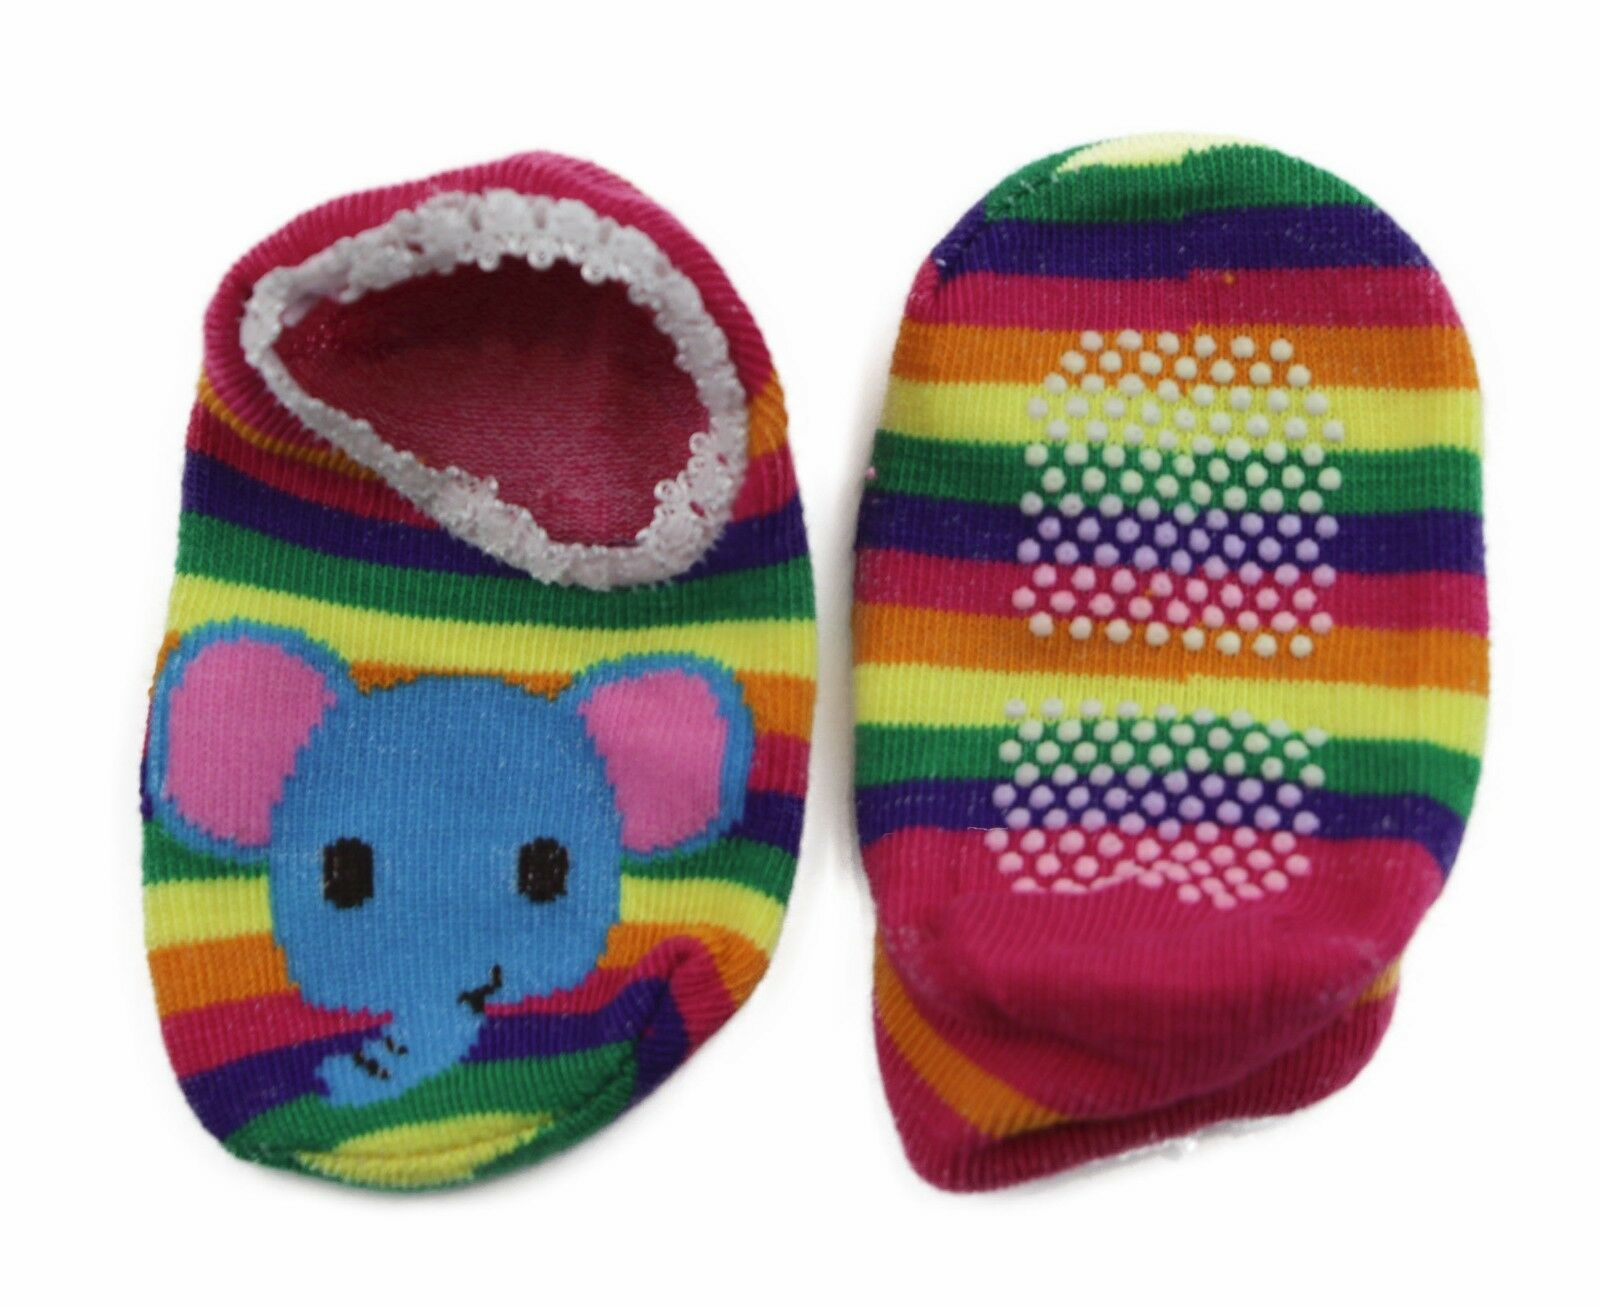 thumbnail 20 - Baby Footlets Kids Toddler Cotton Socks Anti Slip Grip Boys Girls 6-18 Months